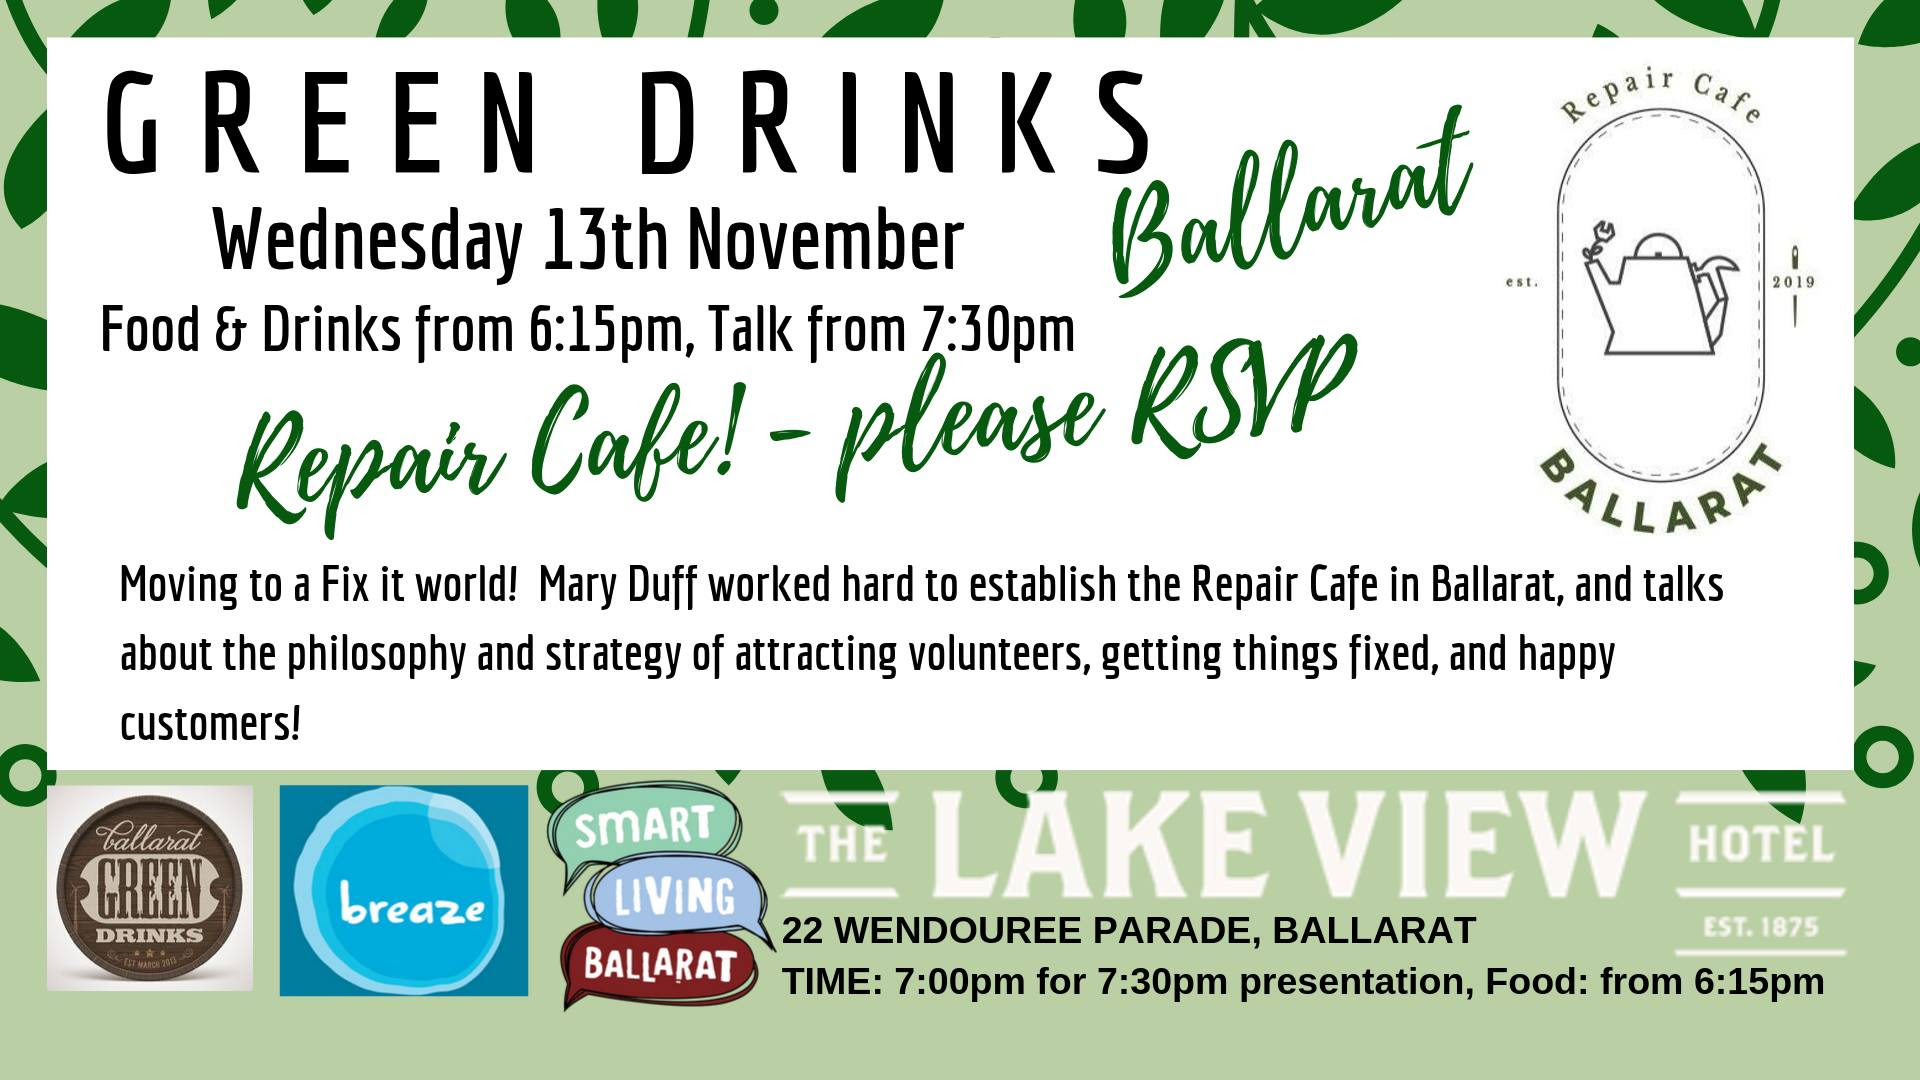 Green Drinks - About the Repair cafe